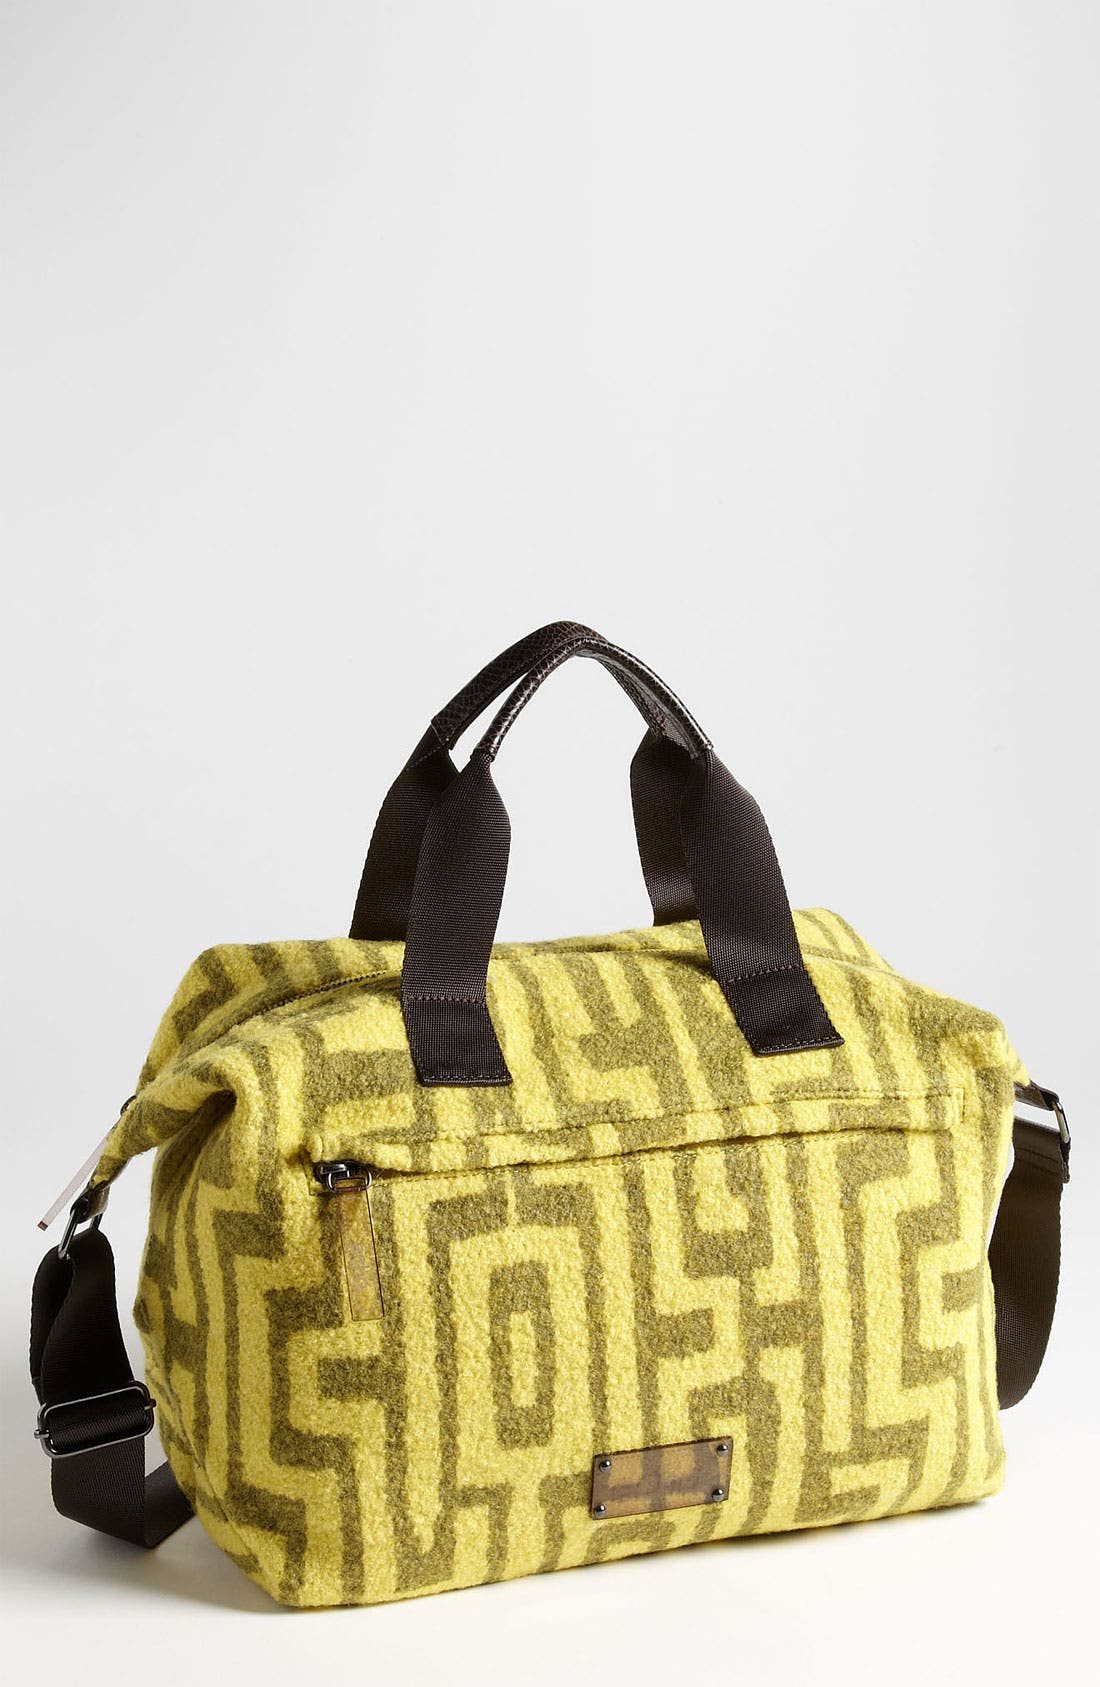 Alternate Image 1 Selected - Echo 'Medium' Printed Bouclé Tote